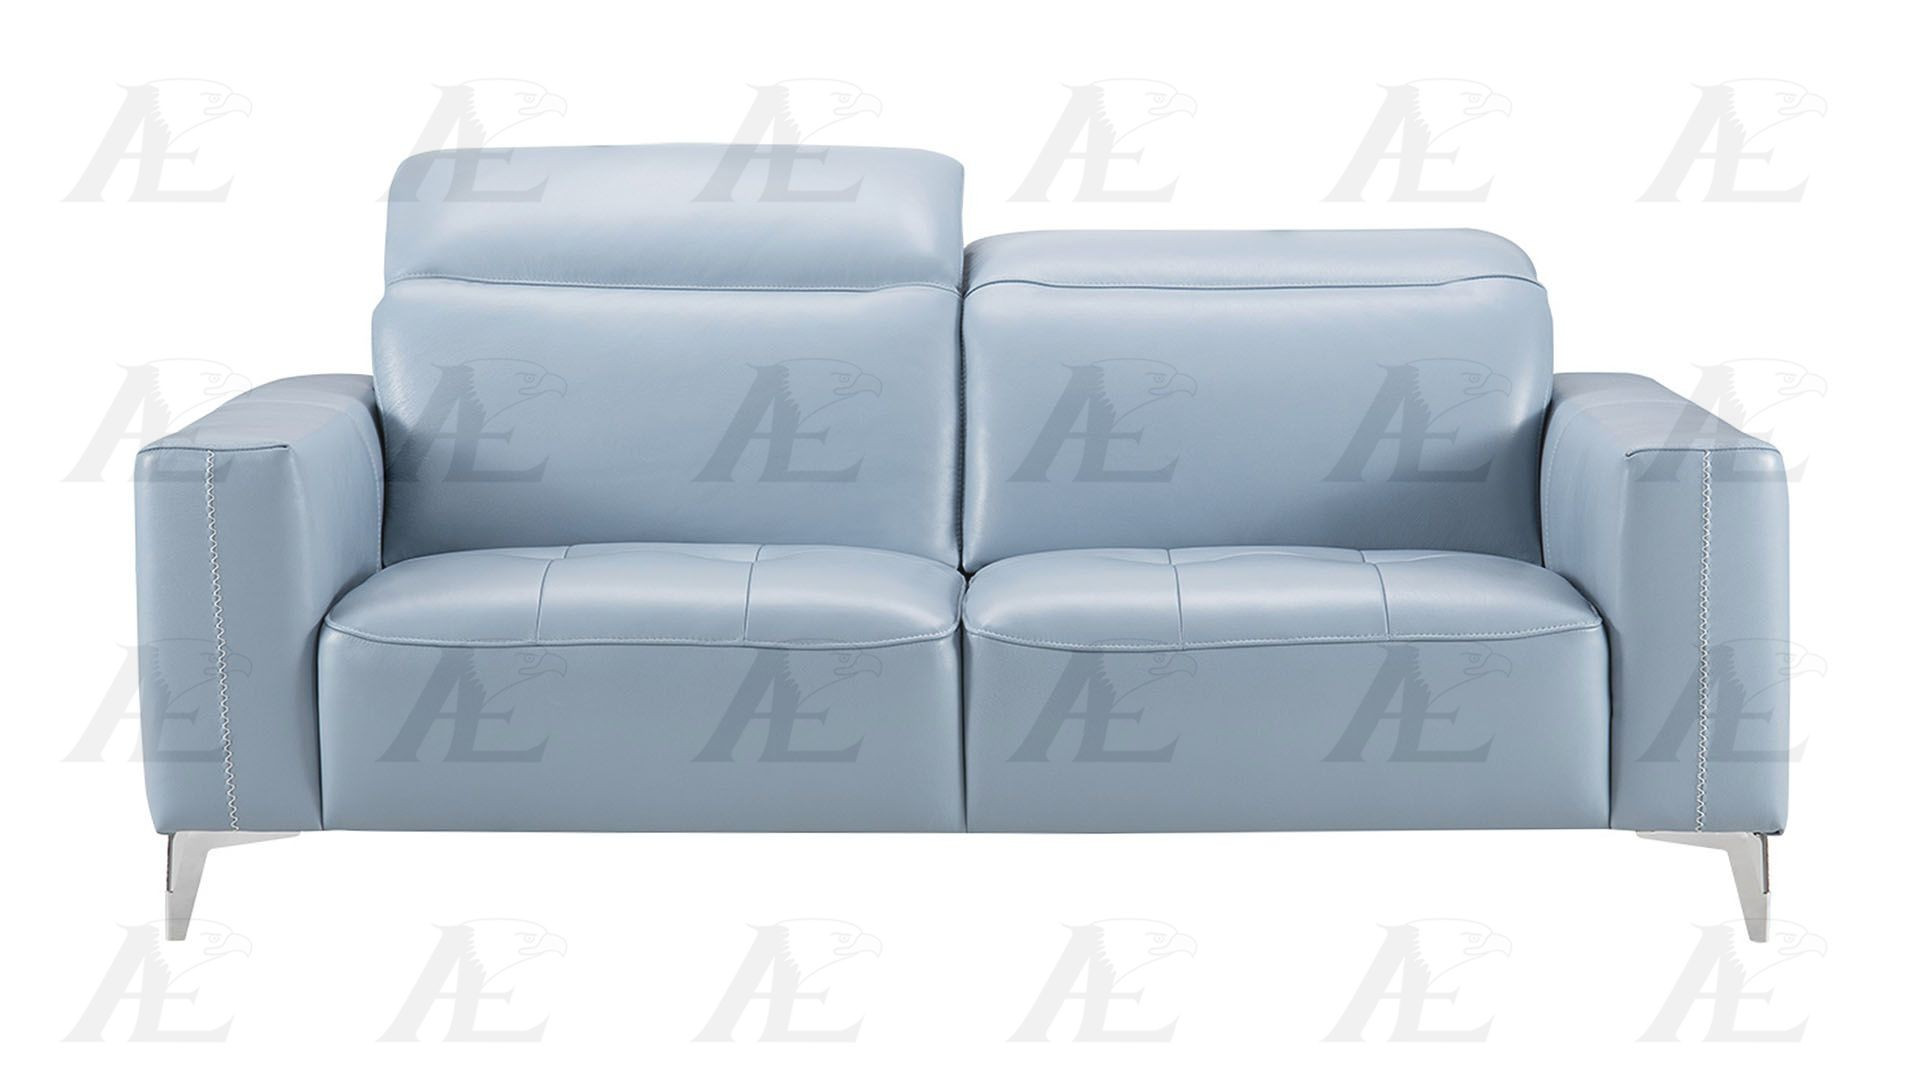 Best ideas about Light Blue Leather Sofa . Save or Pin Light Blue Italian Full Leather Sofa Set Now.